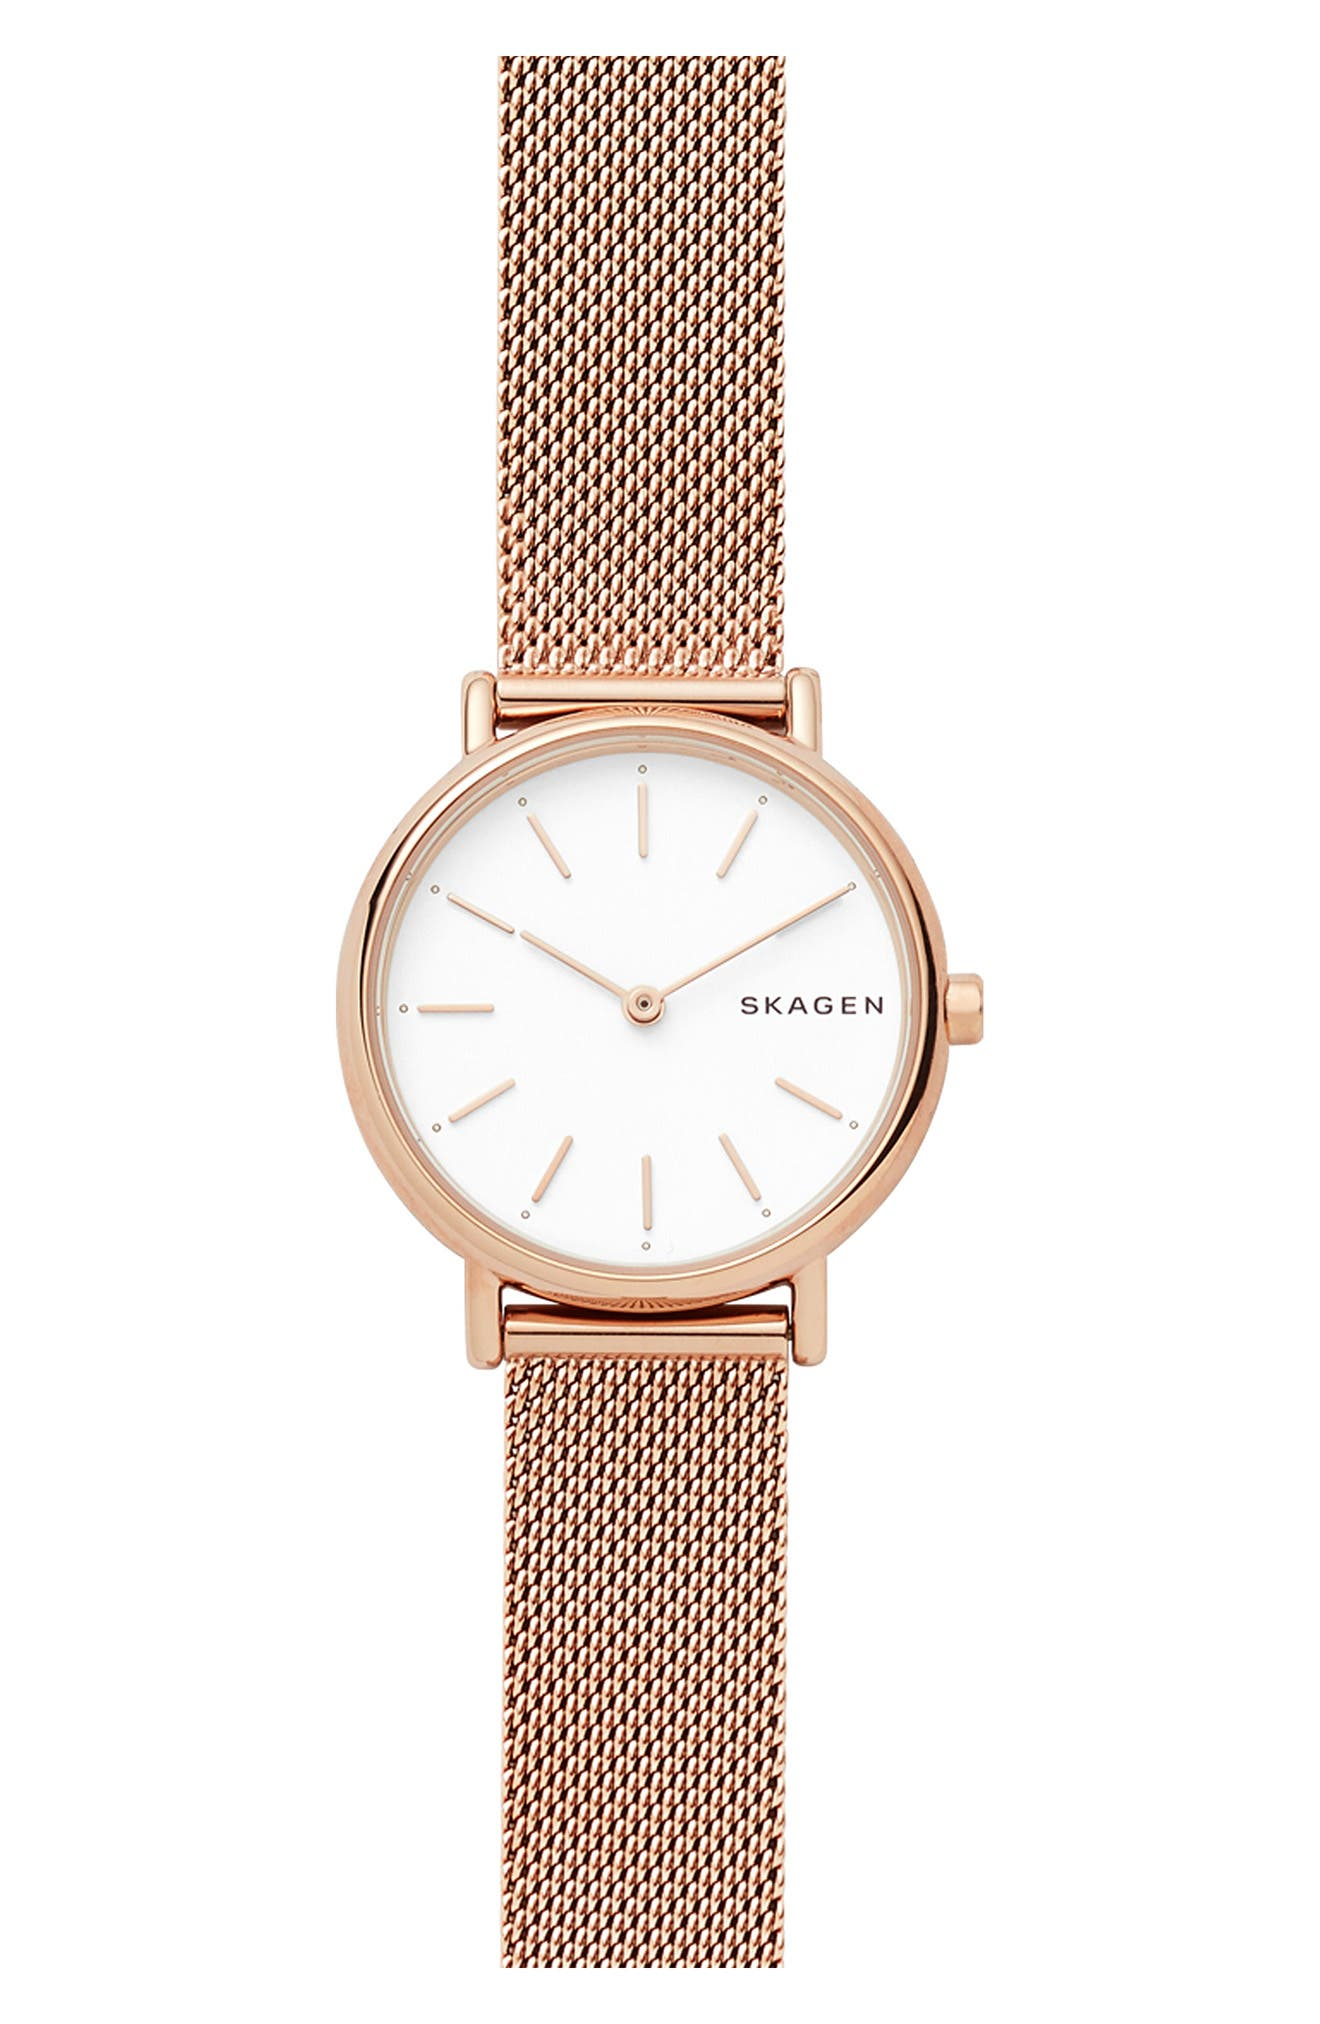 Signatur Slim Mesh Strap Watch, 30mm,                             Main thumbnail 1, color,                             ROSE GOLD/ WHITE/ ROSE GOLD